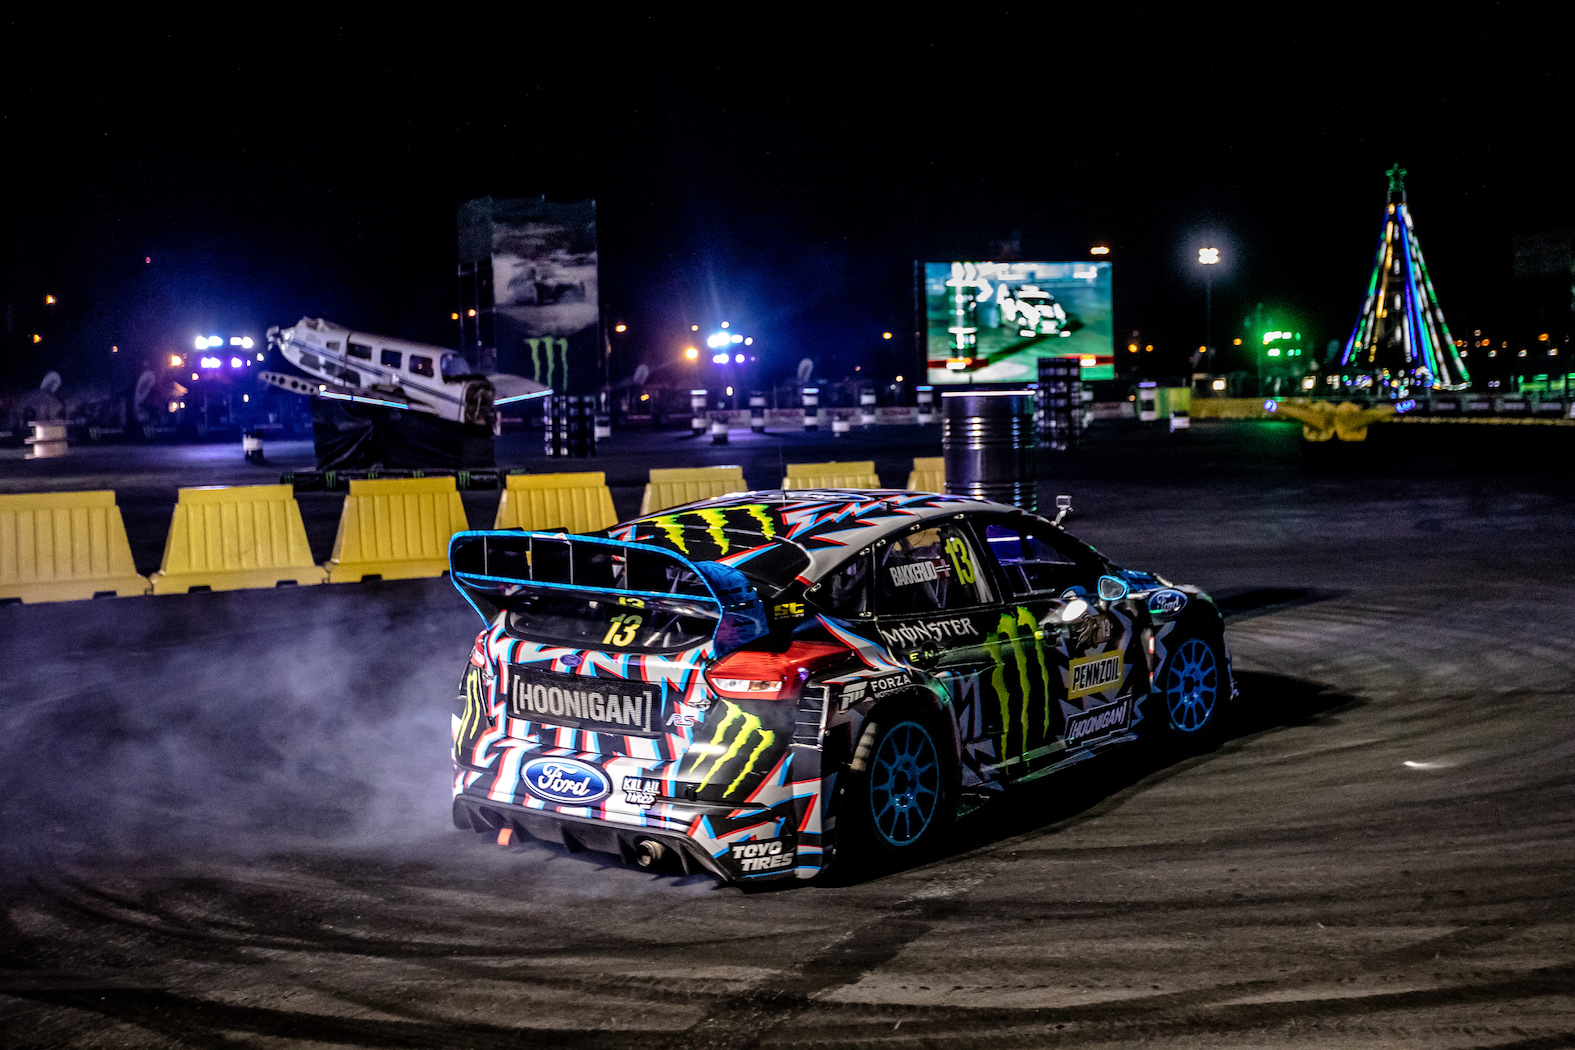 Andreas Bakkerud places 3rd at Gymkhana Grid 2017